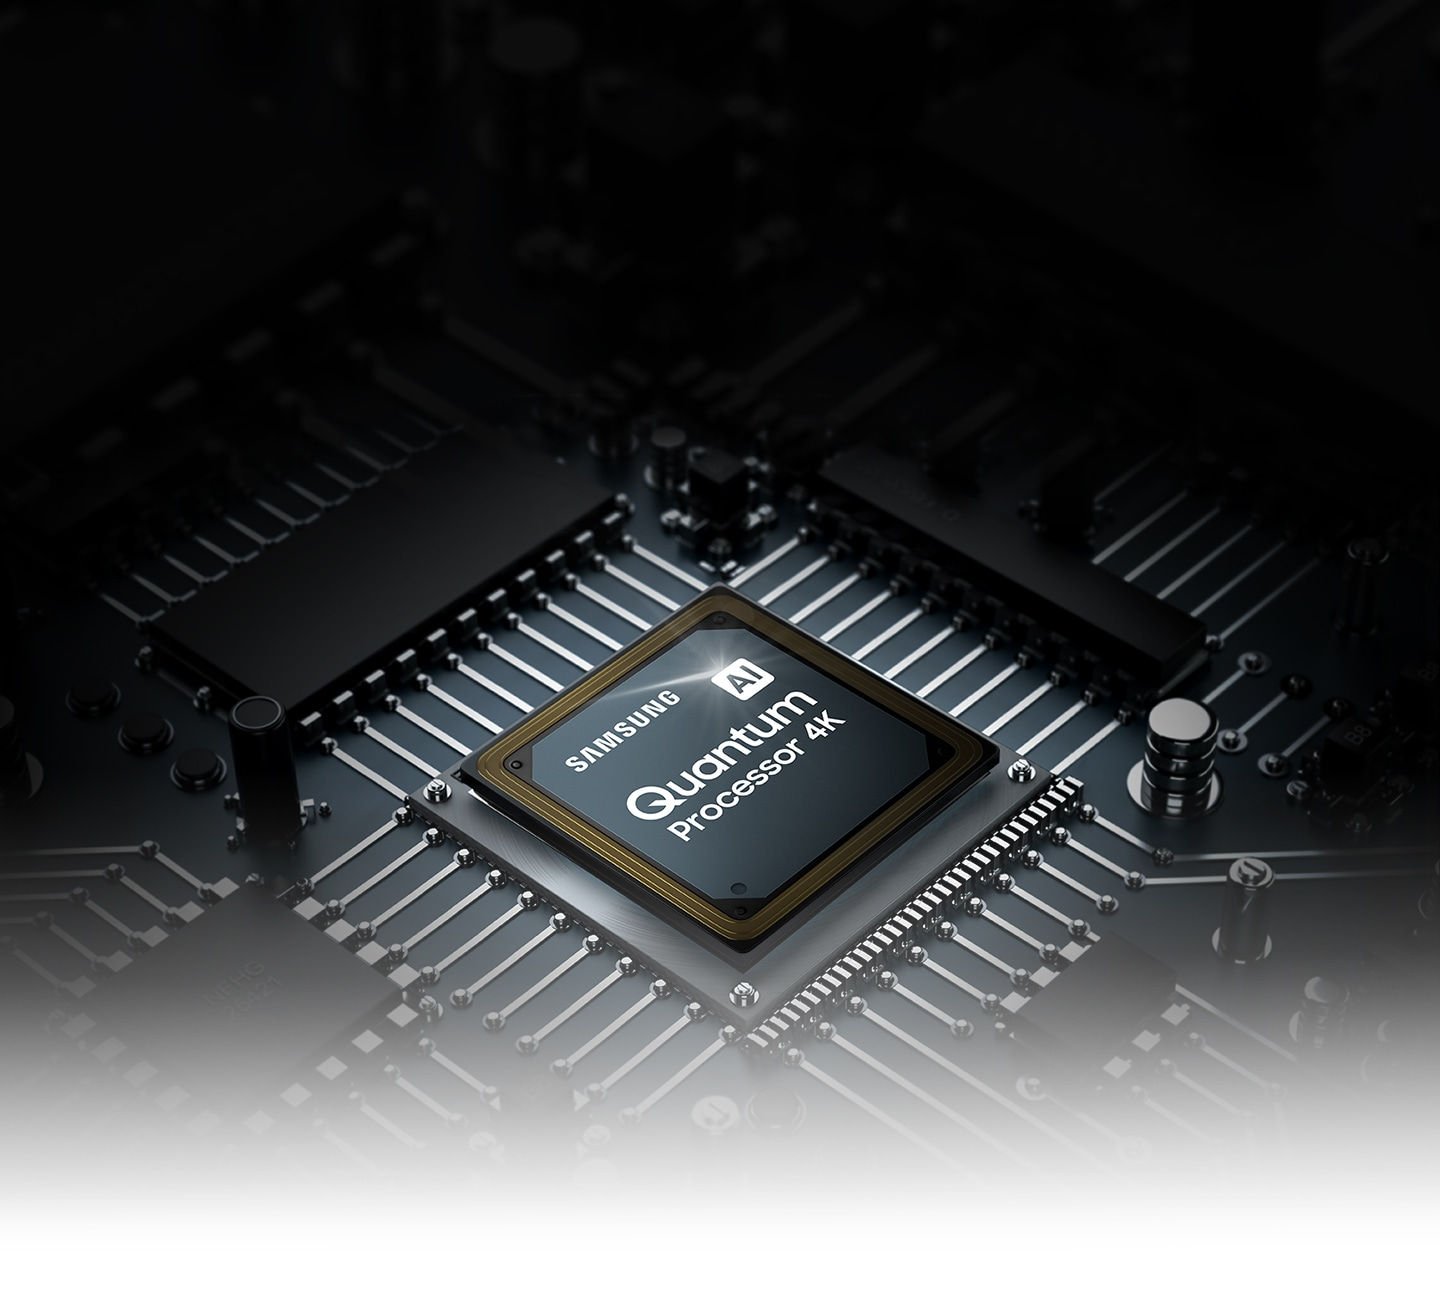 QLED TV processor chip.  The Samsung and AI Quantum Processor 4K logo can be seen at the top.